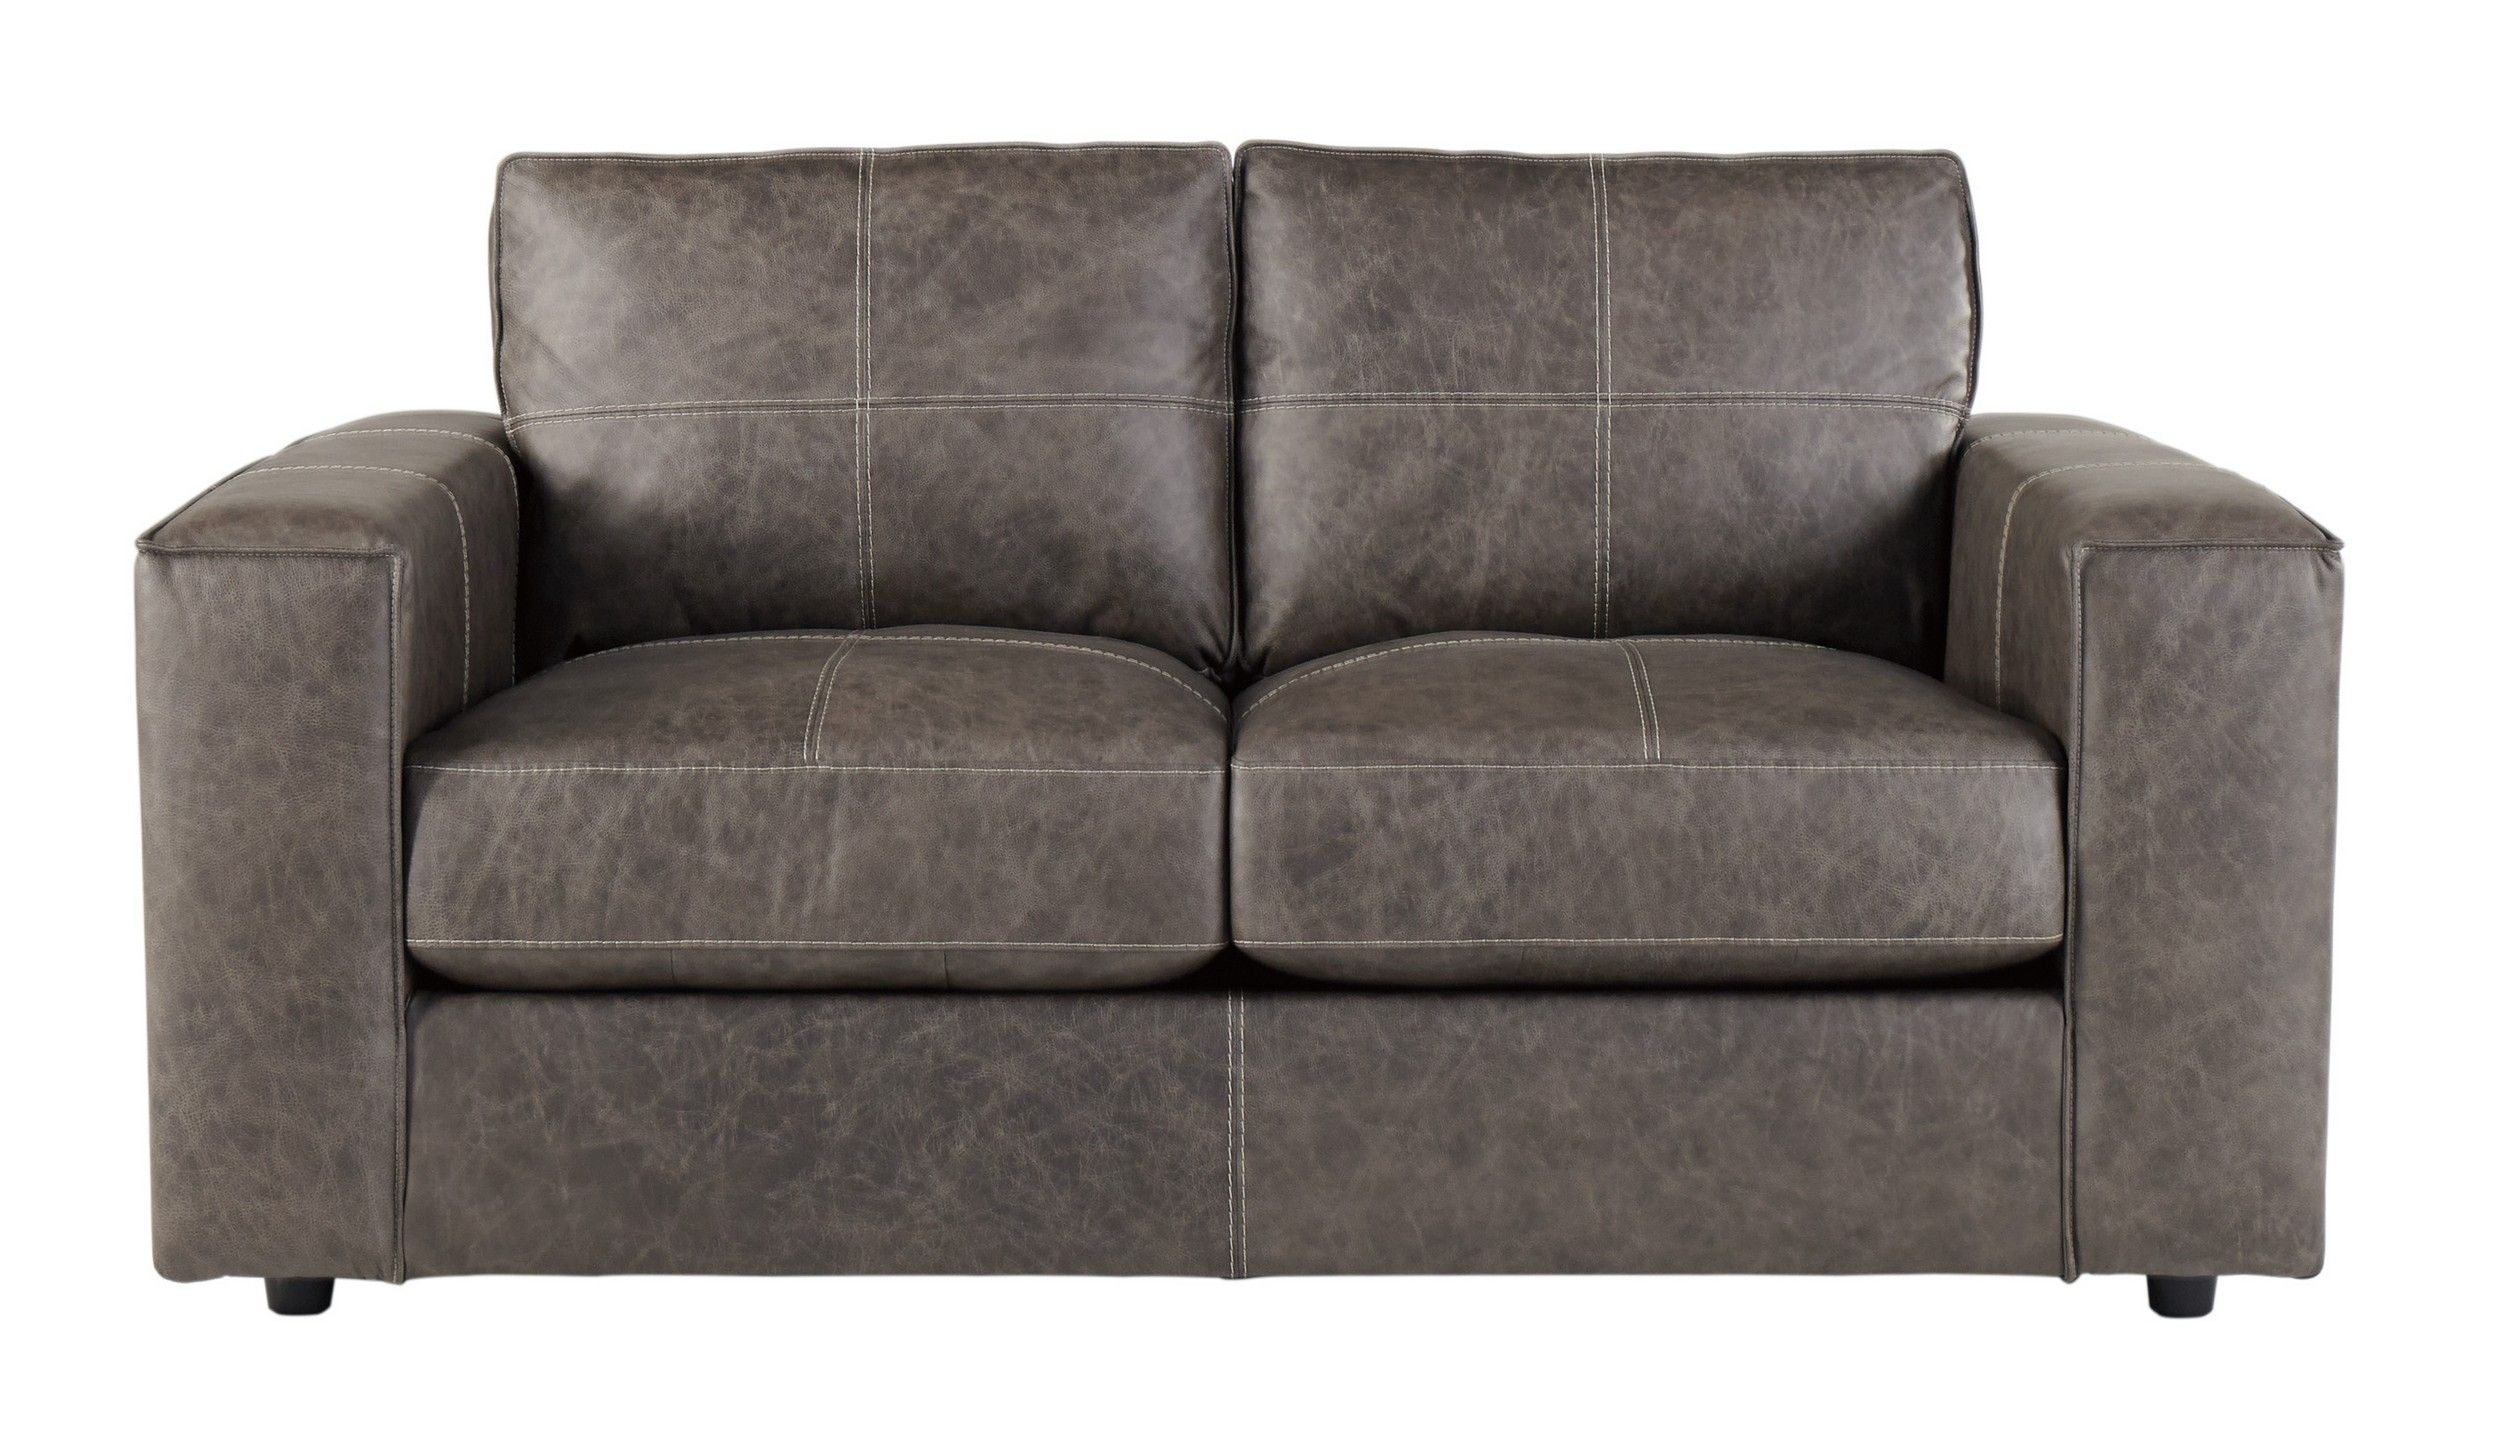 Signature Design By Ashley Trembolt Smoke Loveseat Reviews